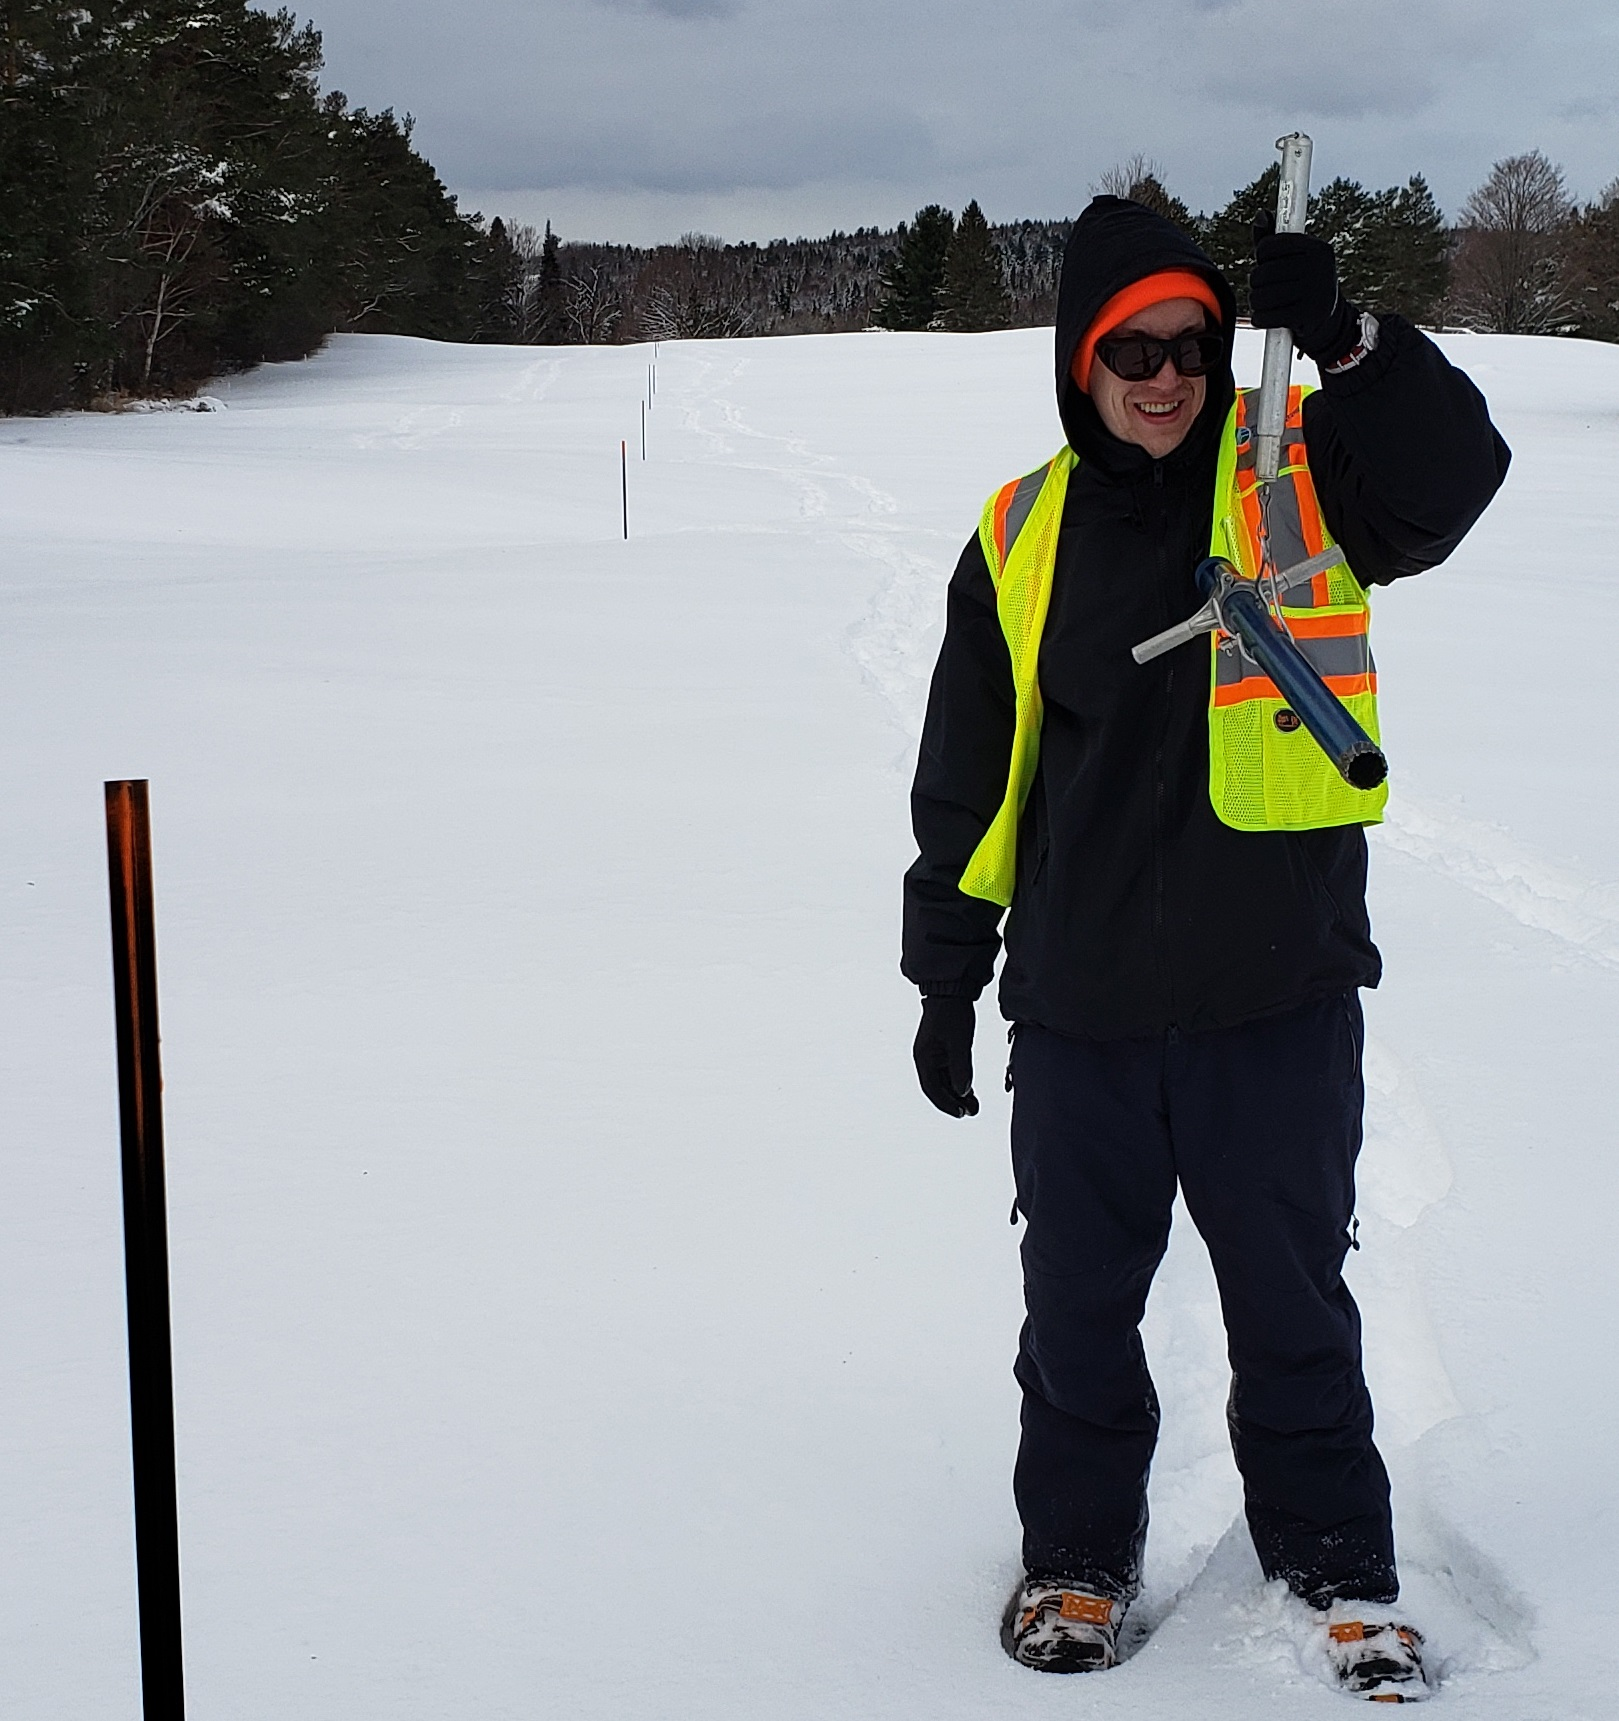 Snow depth way above average for this time of year says Authority